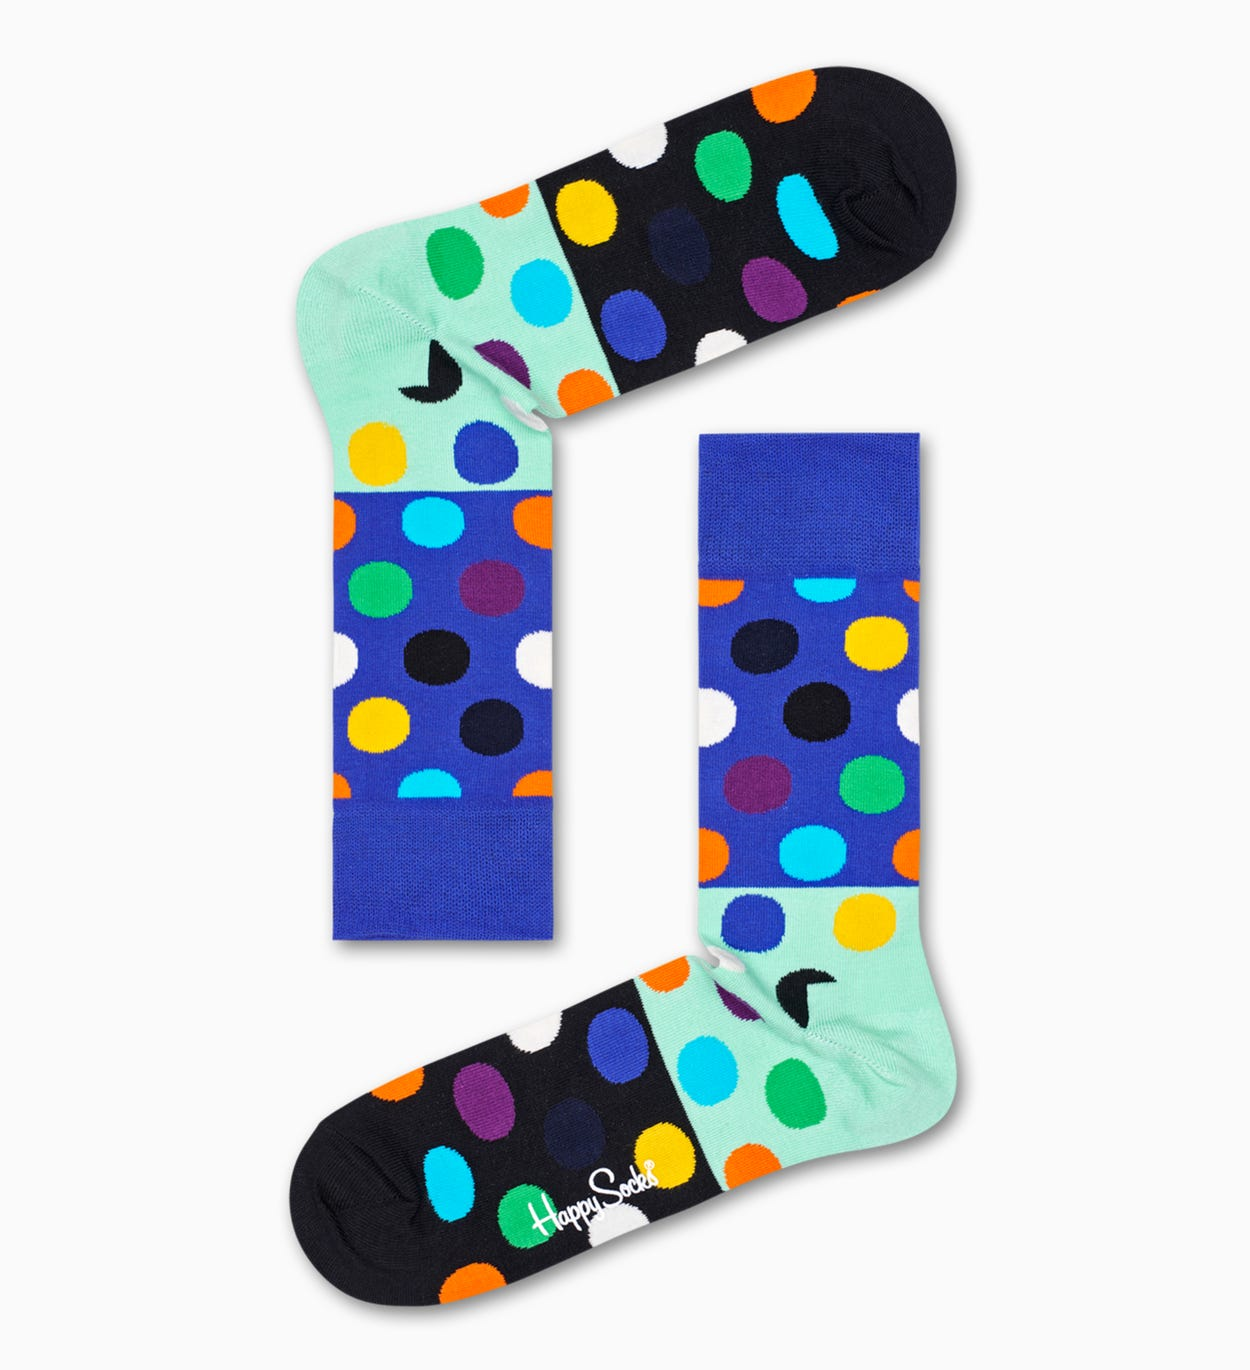 Big Dot Socks Gift Box | Happy Socks